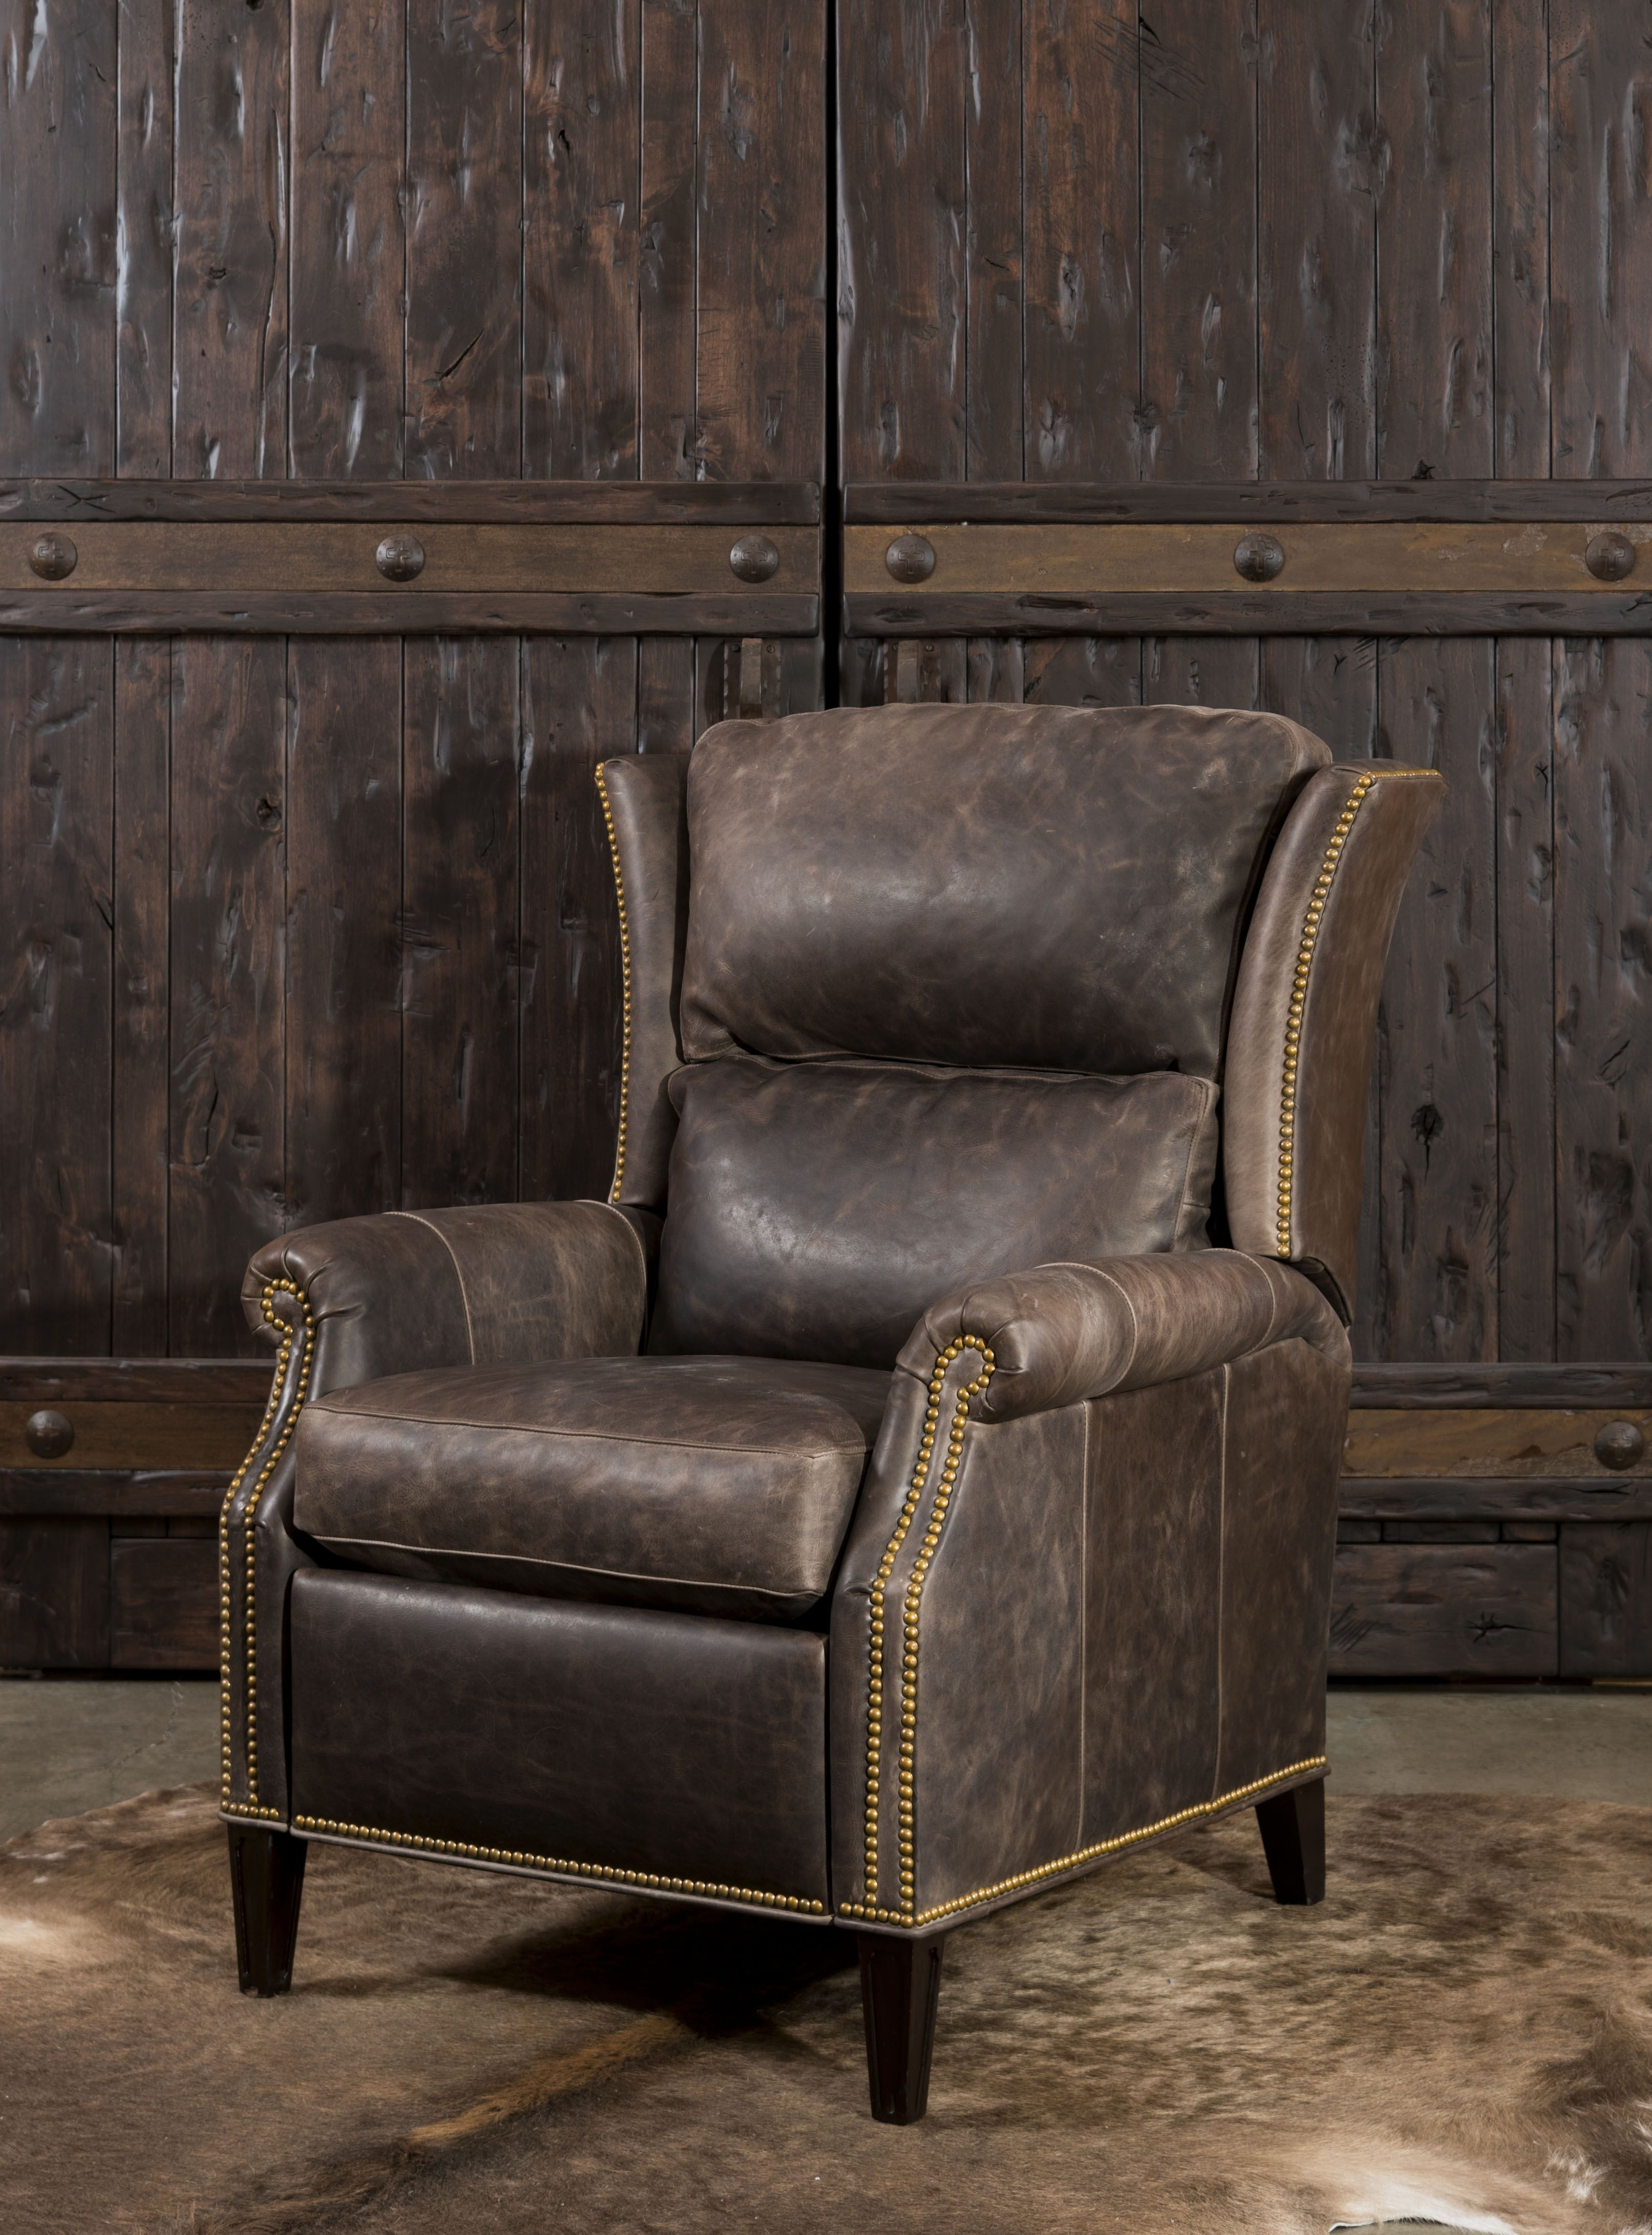 The Lexington Recliner at Adobe Interiors features a beautiful